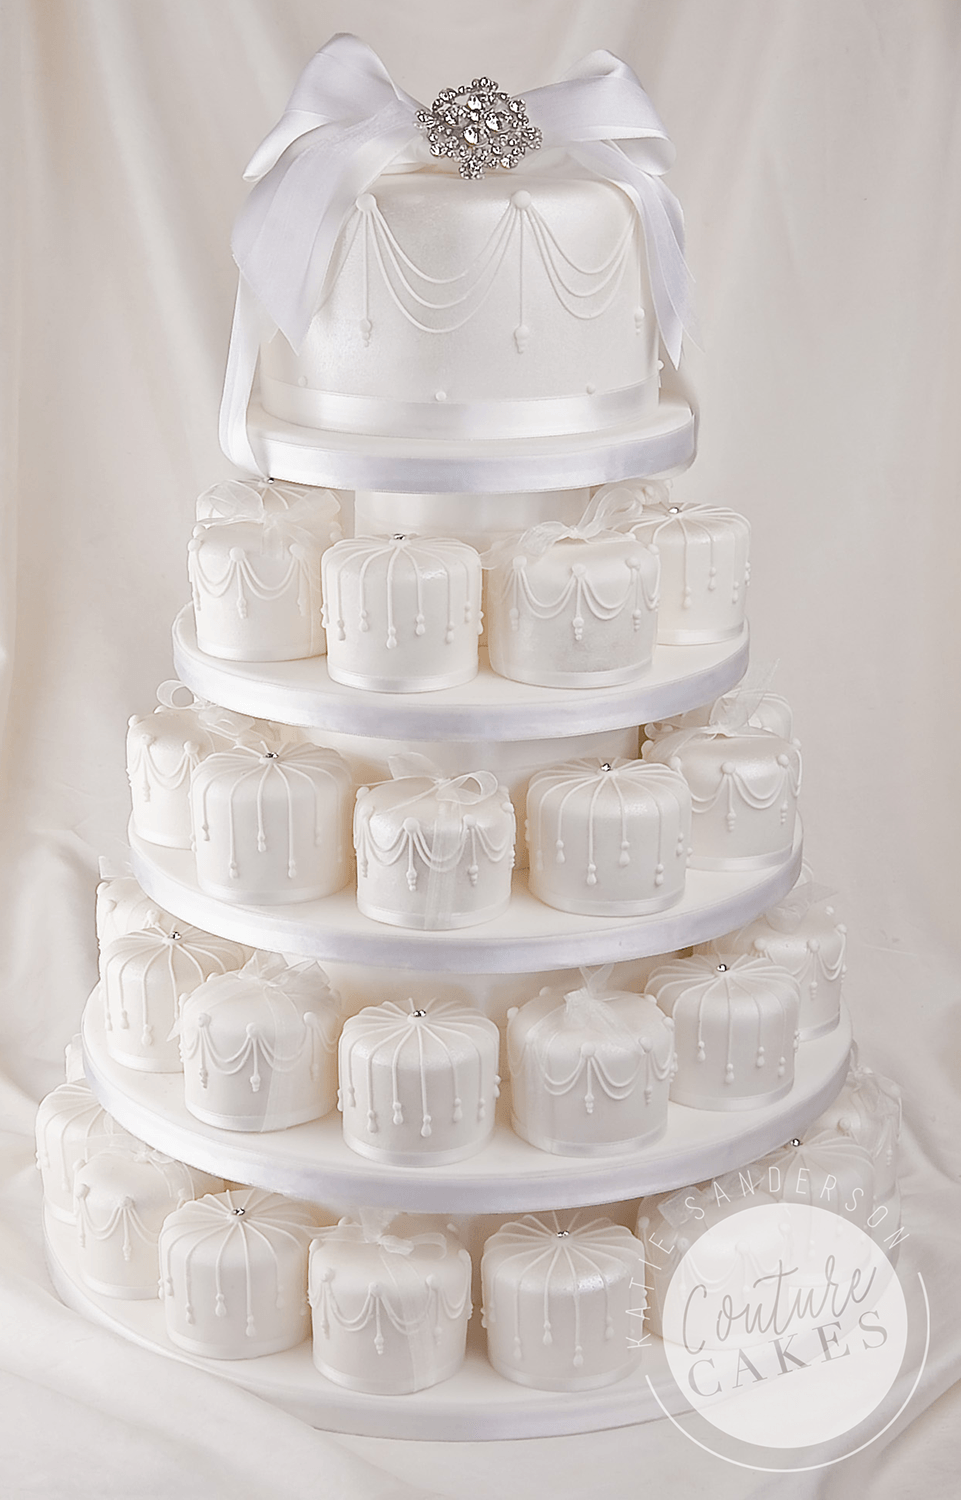 Serves 46 mini cakes and 20 portion top tier, price as pictured £577